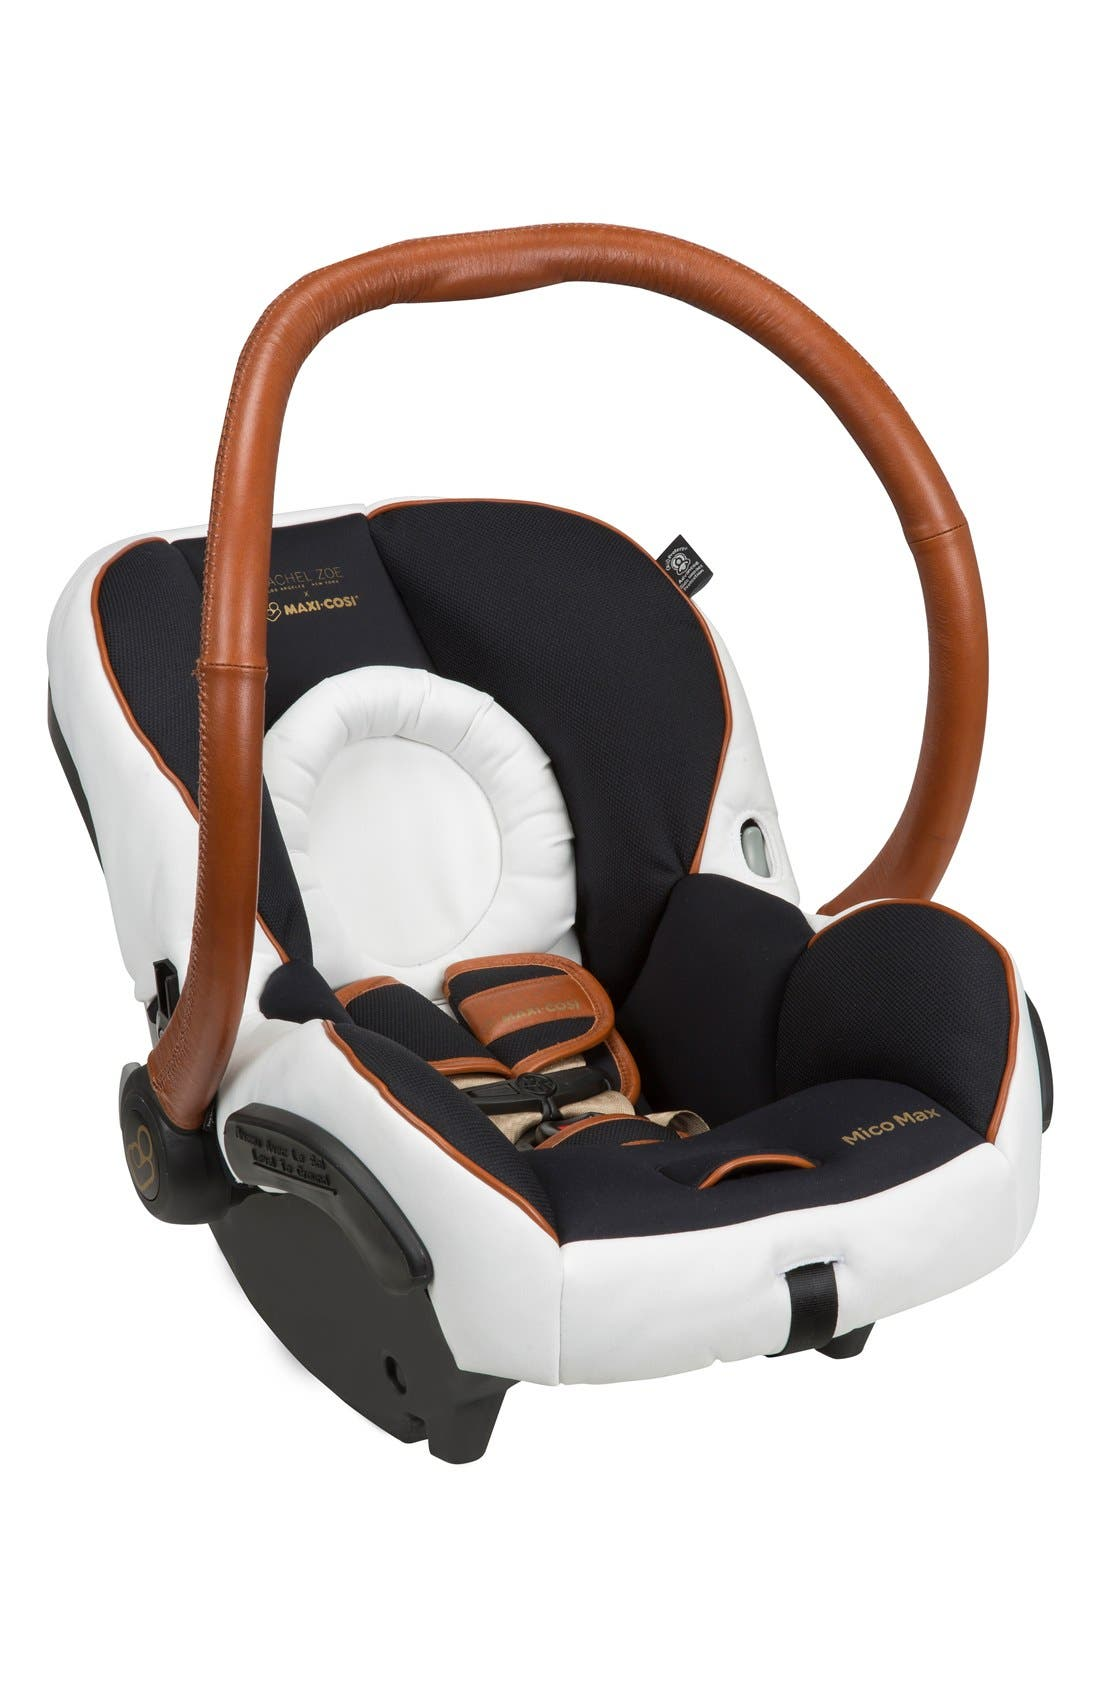 x Rachel Zoe Mico Max 30 - Special Edition Infant Car Seat,                             Main thumbnail 1, color,                             005